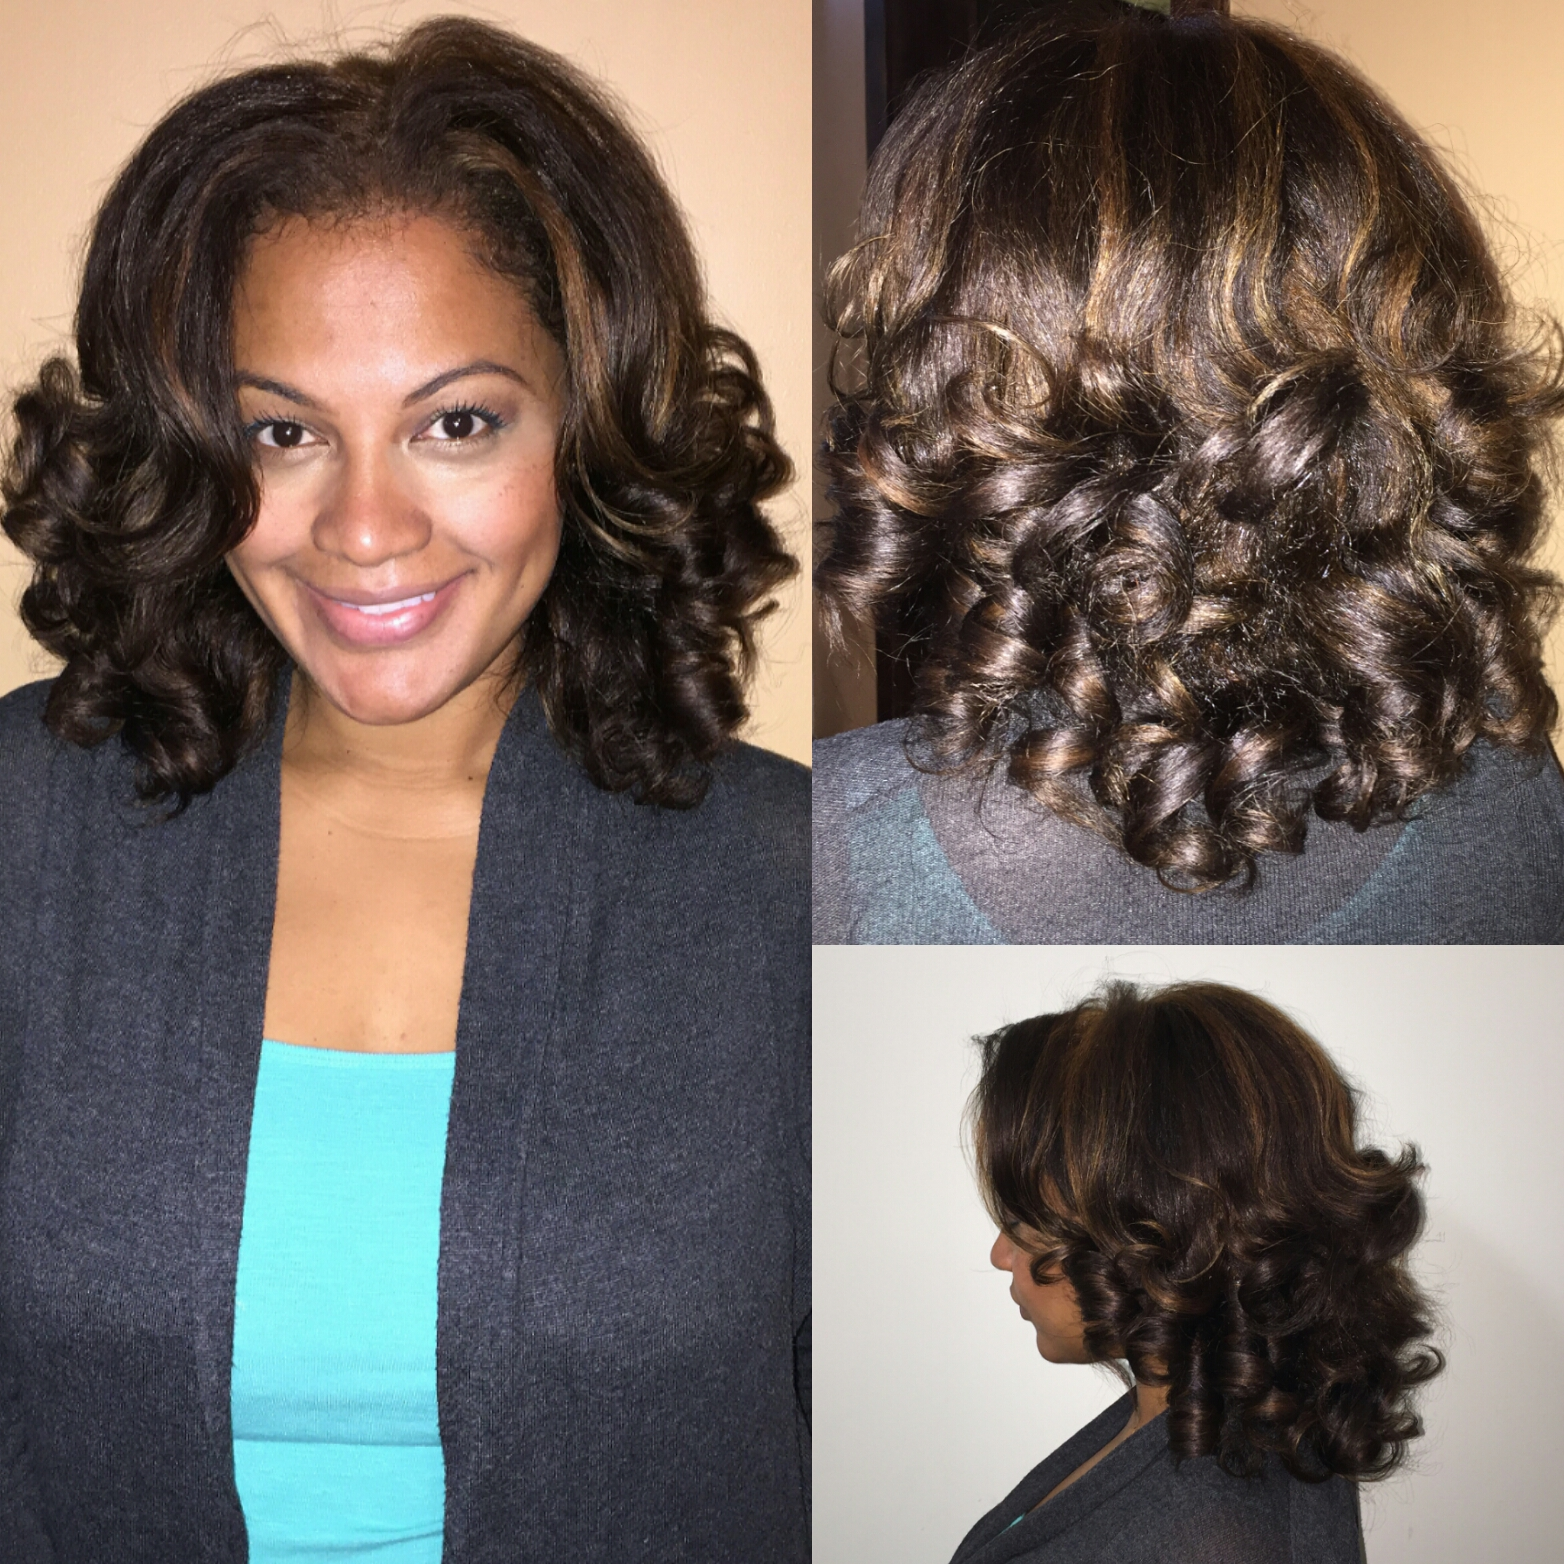 Hair style blow dry perm rods curls image solutioingenieria Images